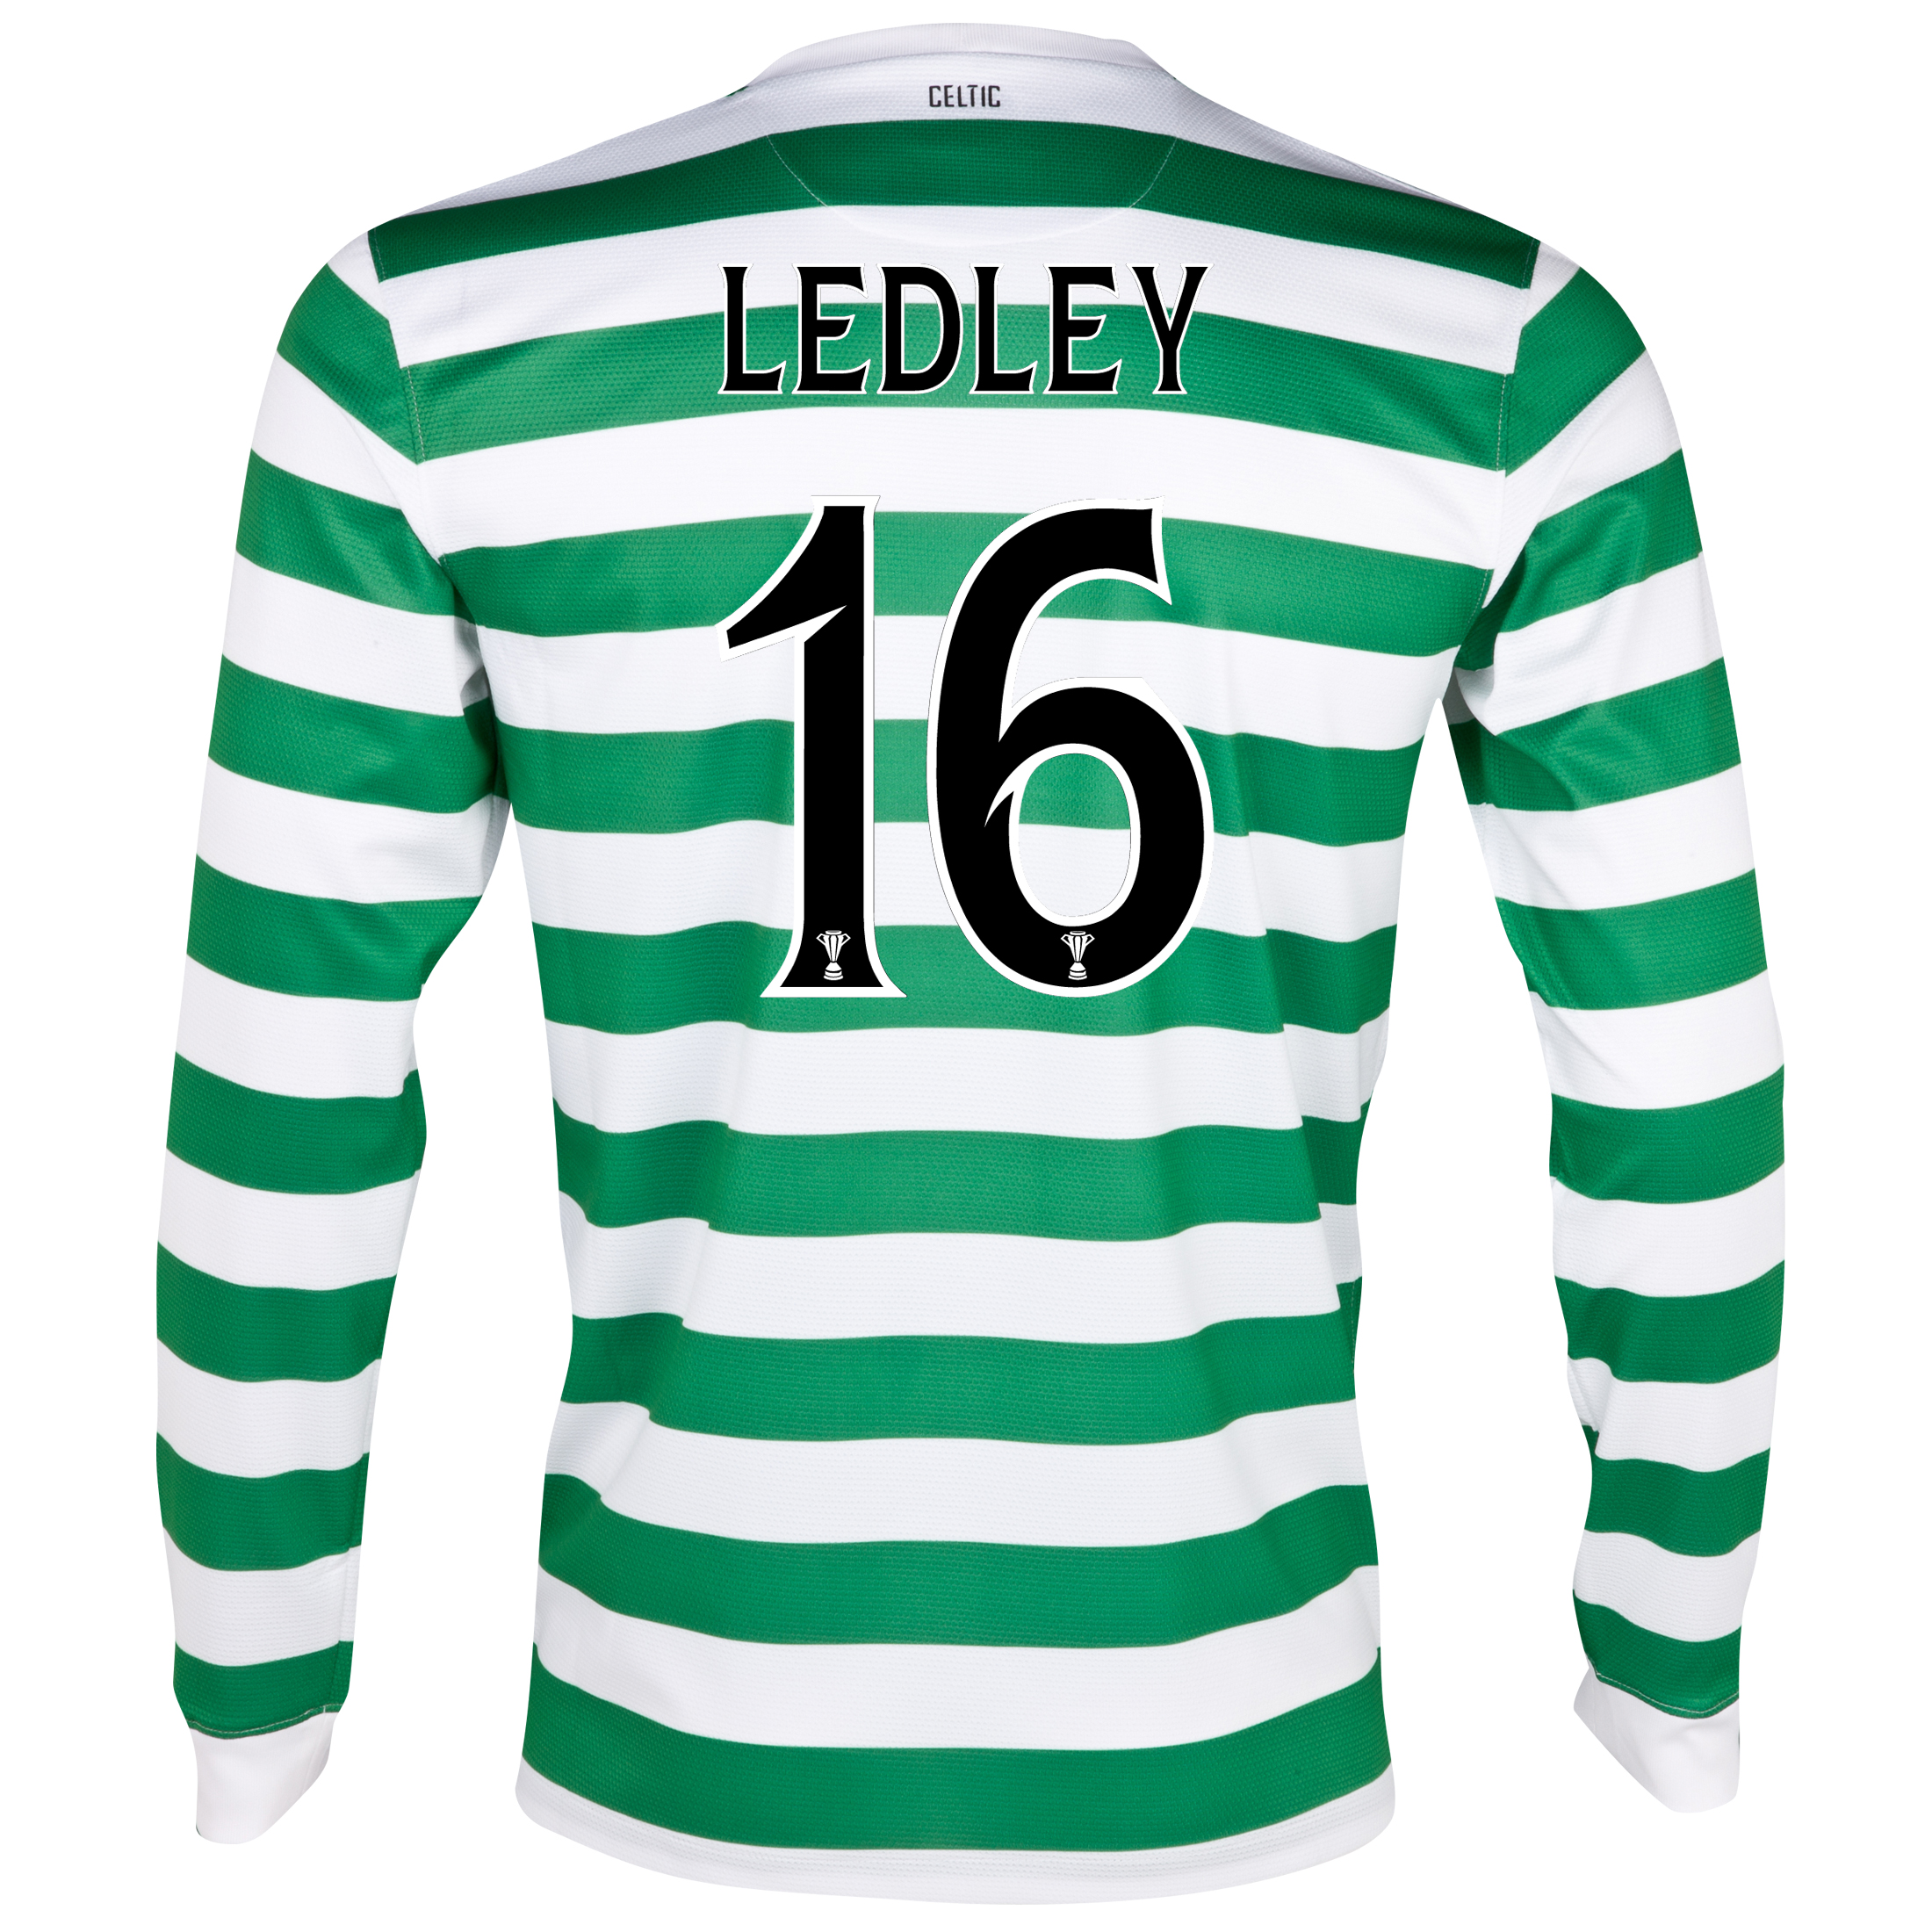 Celtic Home Shirt 2012/13 - Long Sleeved with Ledley 16 printing